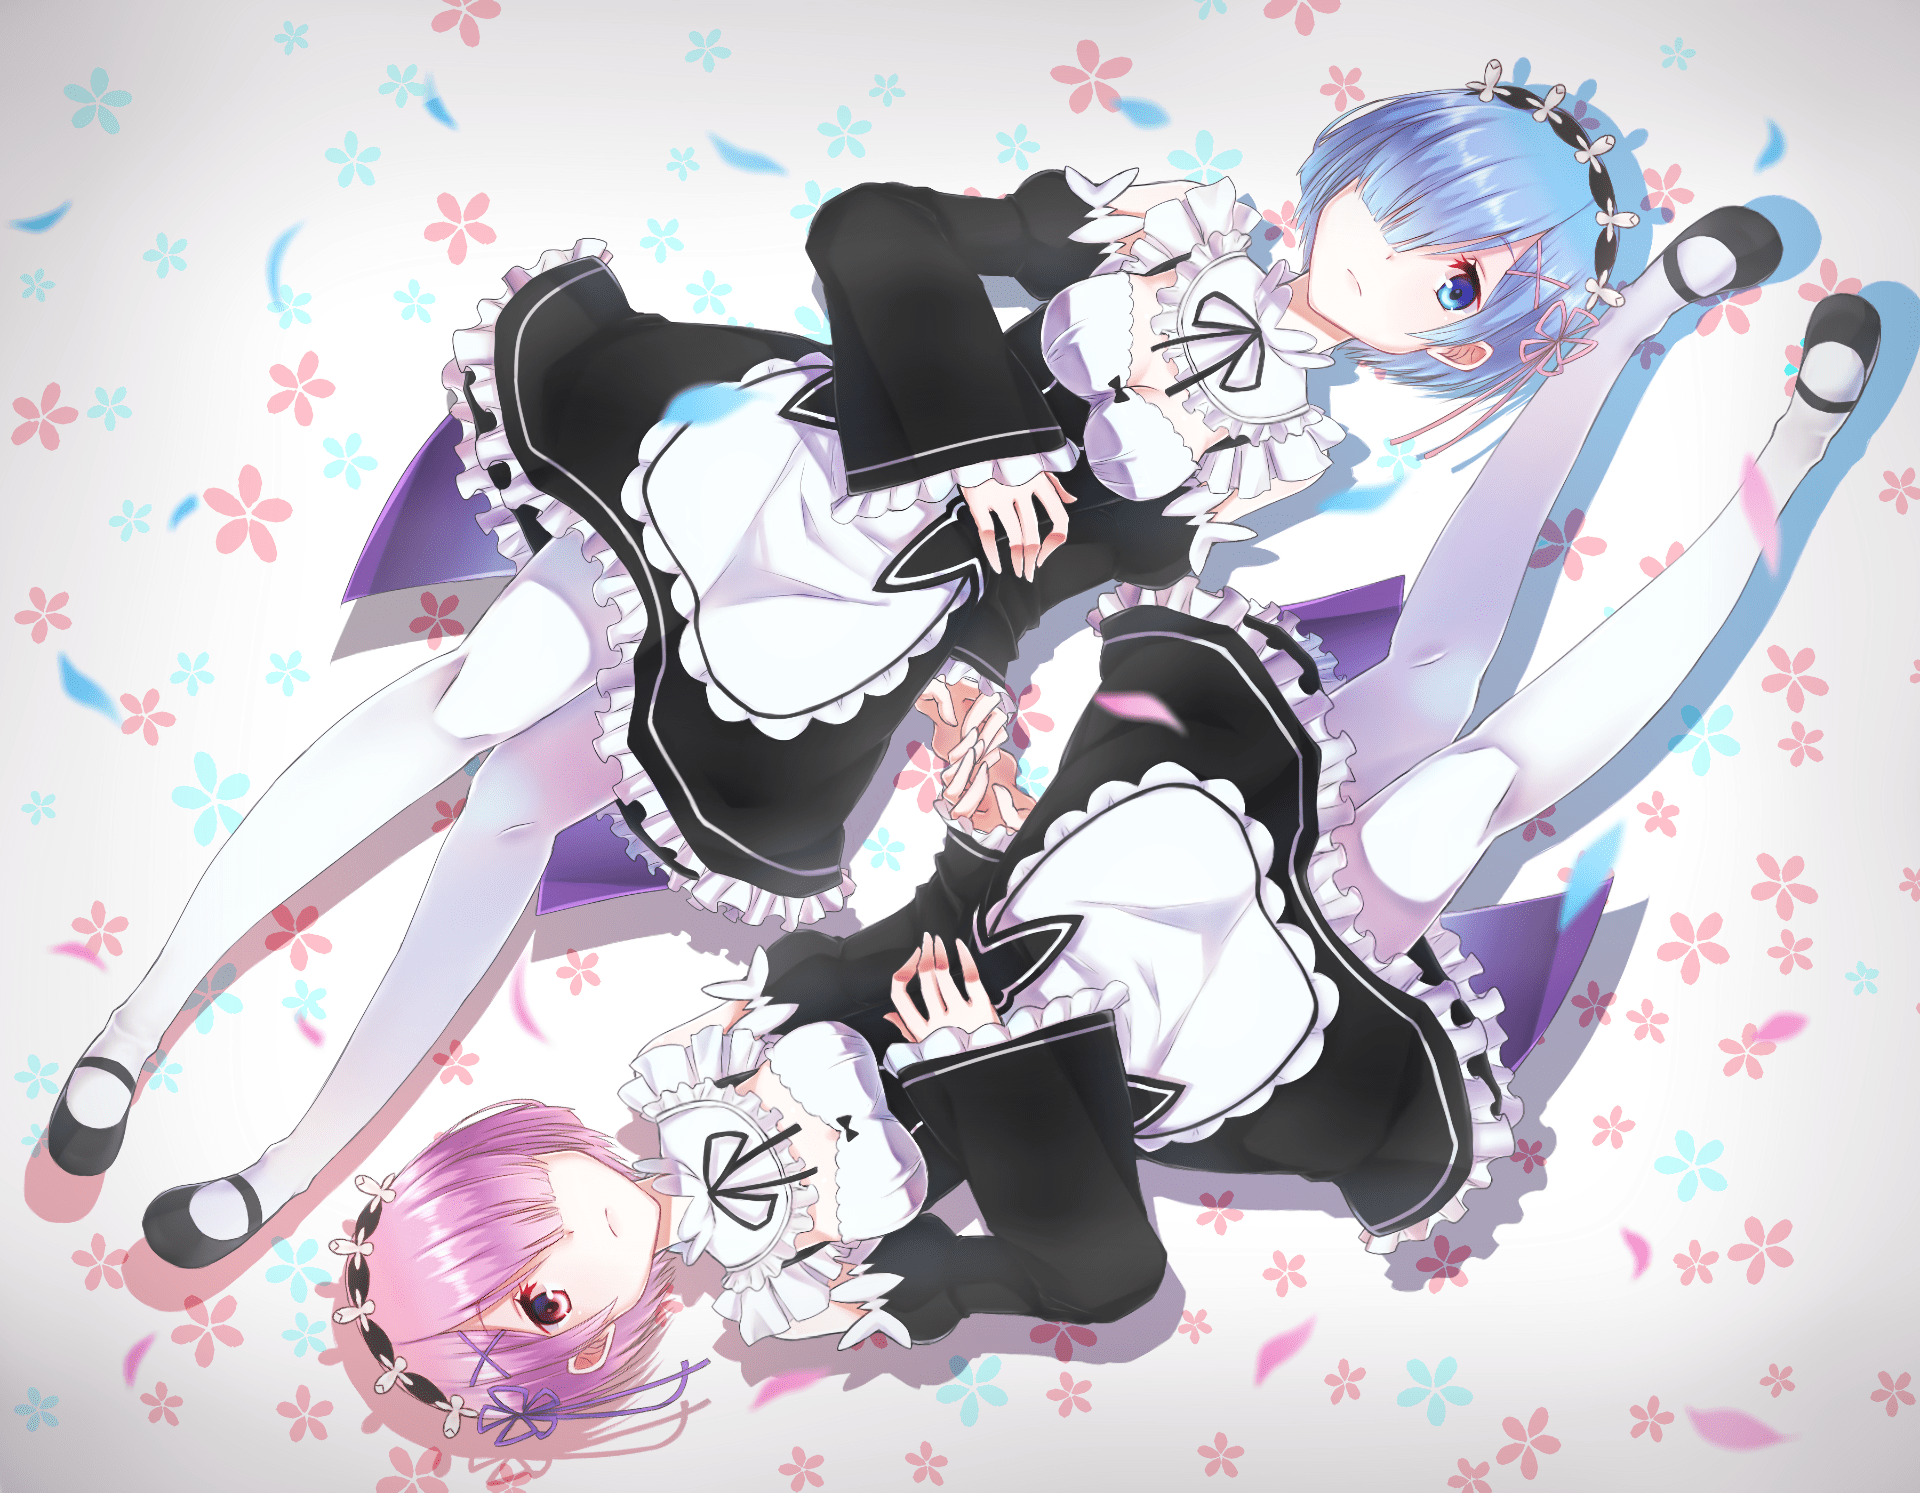 Cute Twin Boy And Girl Wallpapers Re Zero Starting Life In Another World Hd Wallpaper